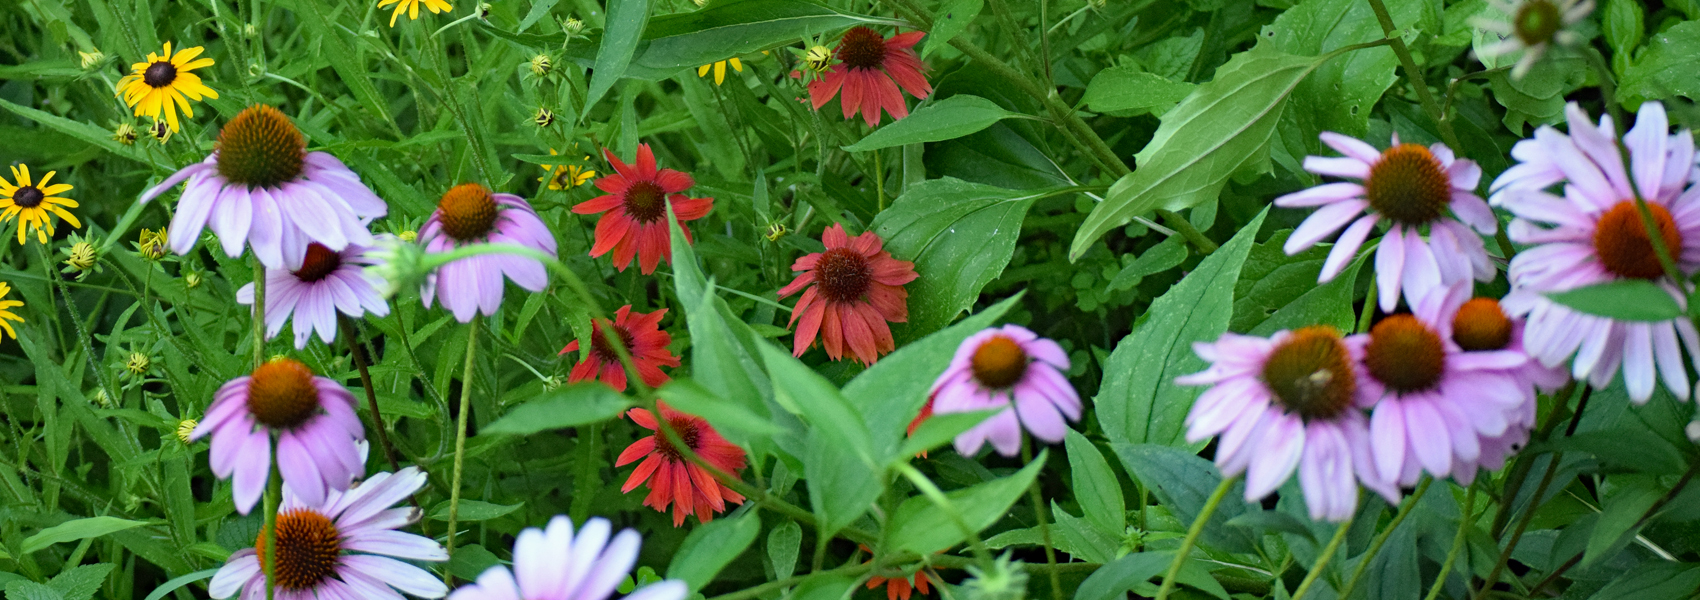 Coneflower and other wildflowers